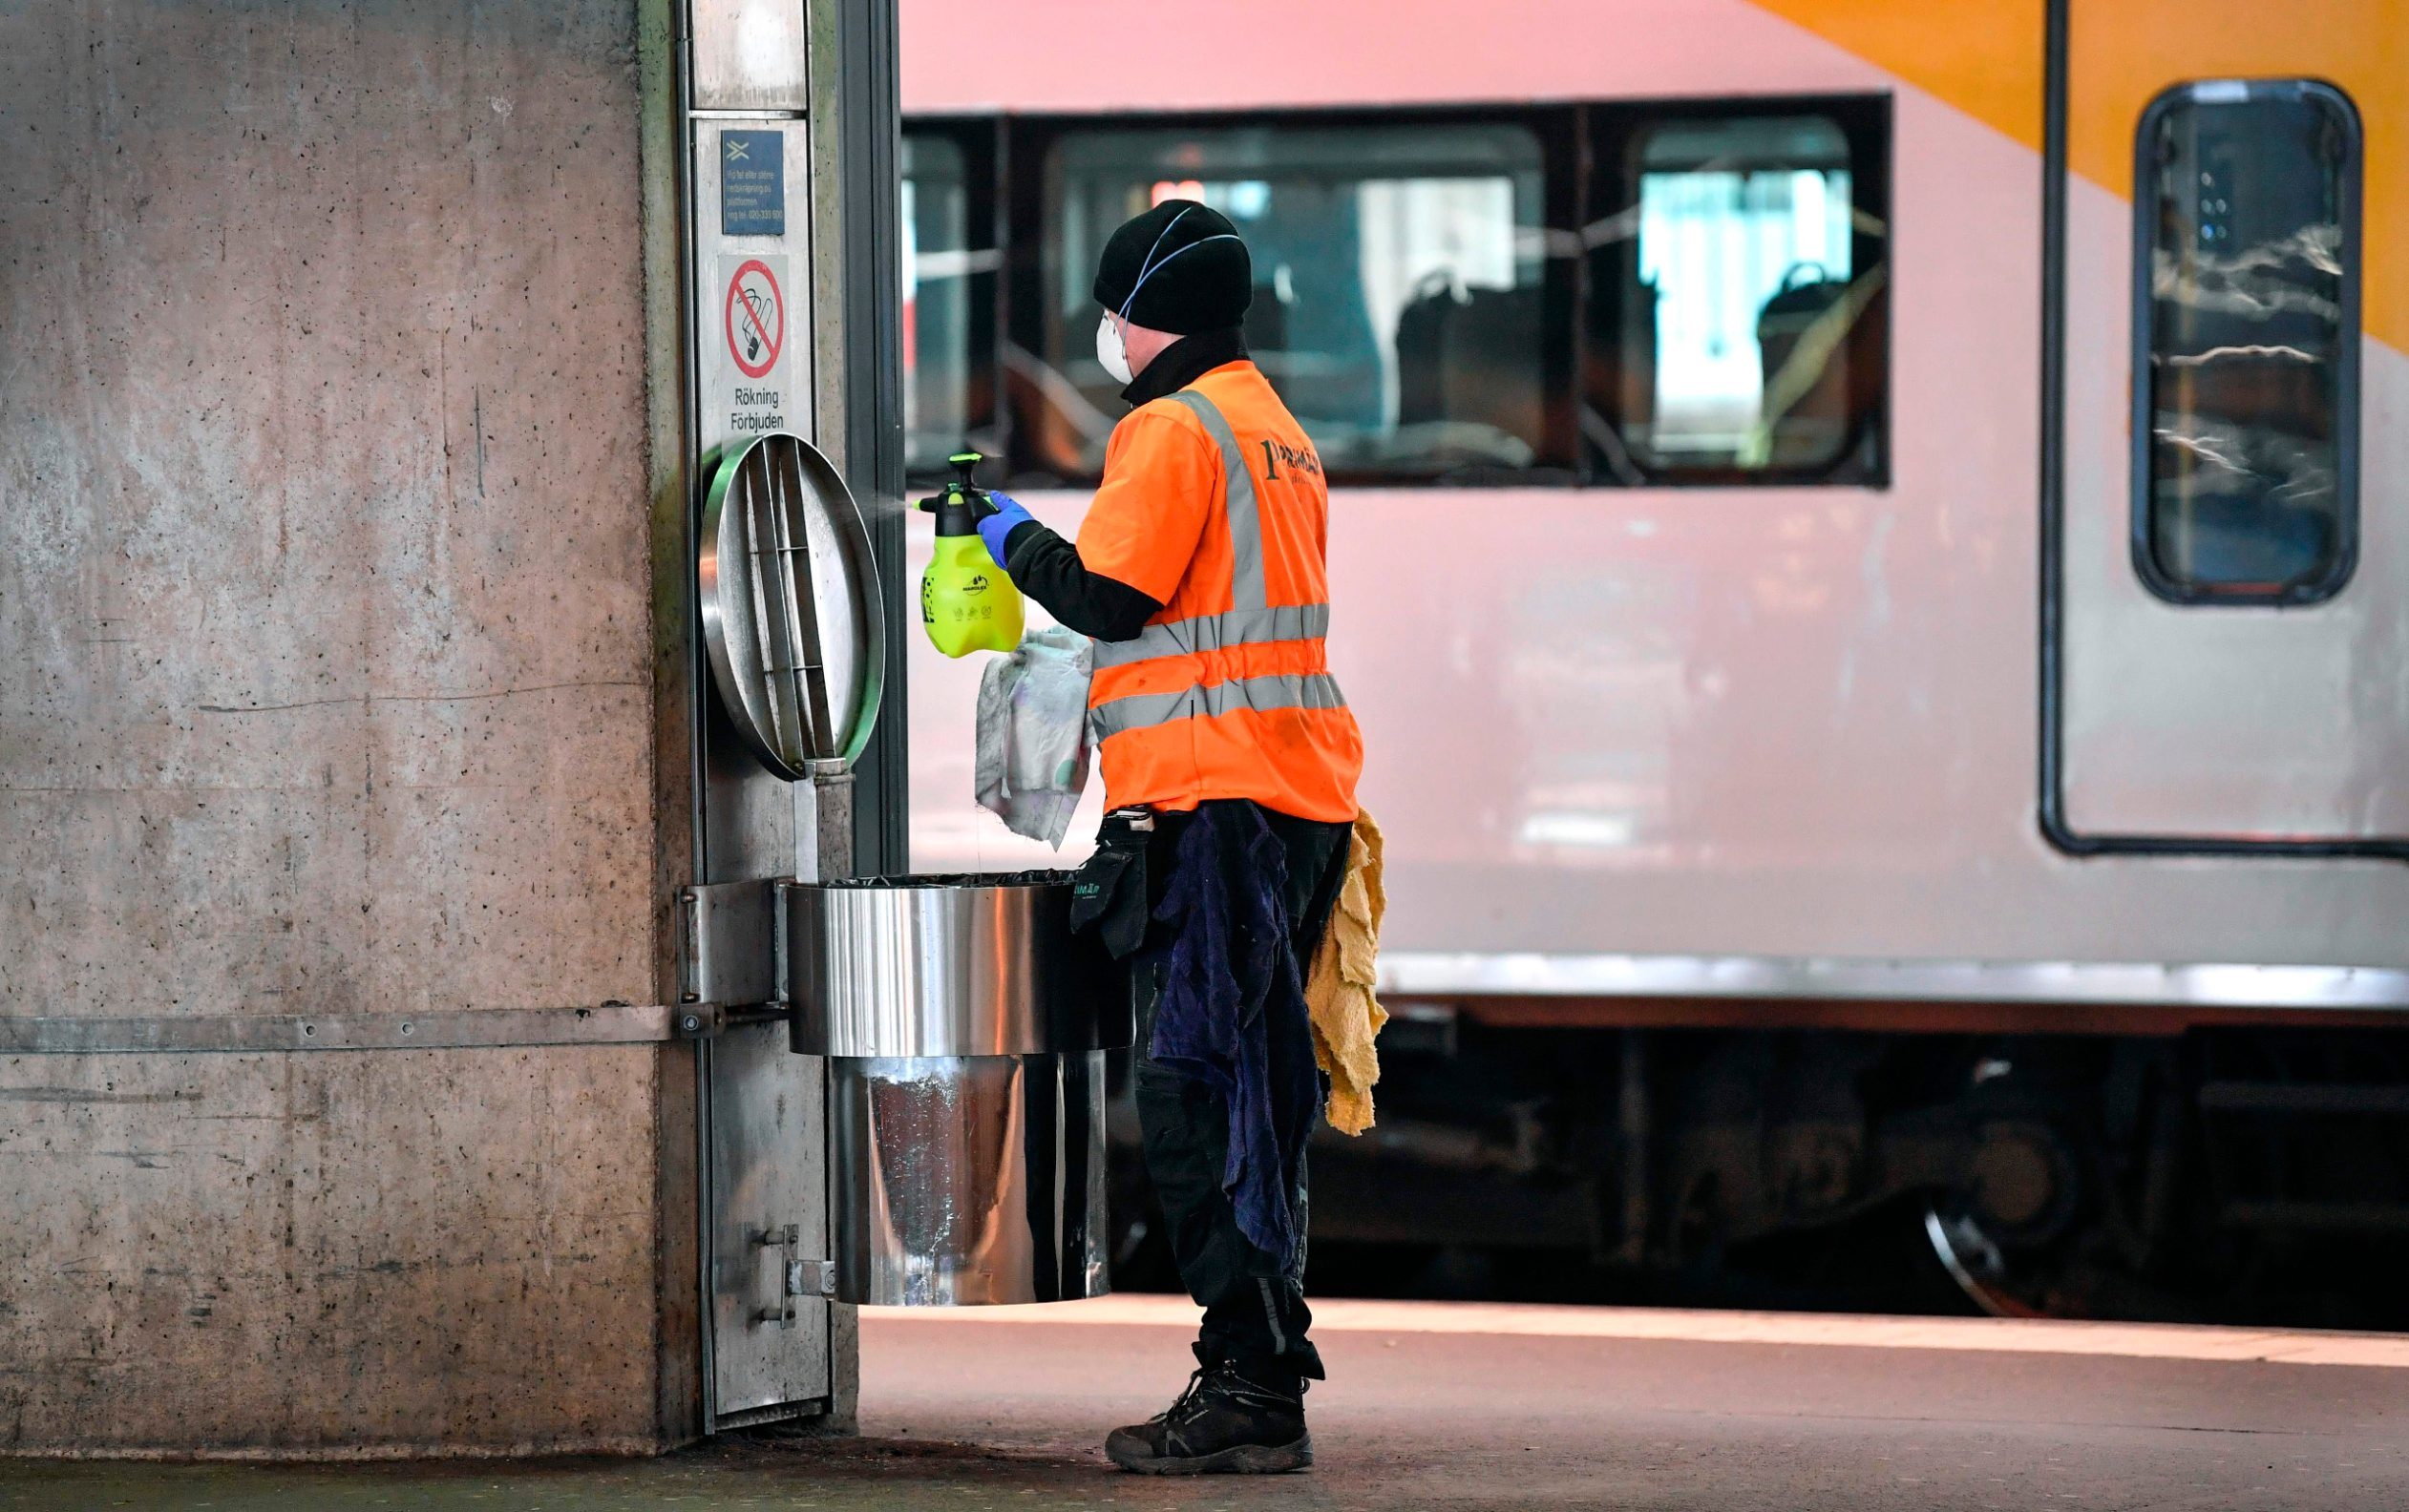 A cleaner wearing a face mask cleans a wastepaper basket on a deserted platform for trains bound for Arlanda Airport, at Stockholm Central station on March 12, 2020 as very few passengers pass the Central station due to the Coronavirus Covid-19 outbreak. (Photo by Anders WIKLUND / various sources / AFP) / Sweden OUT